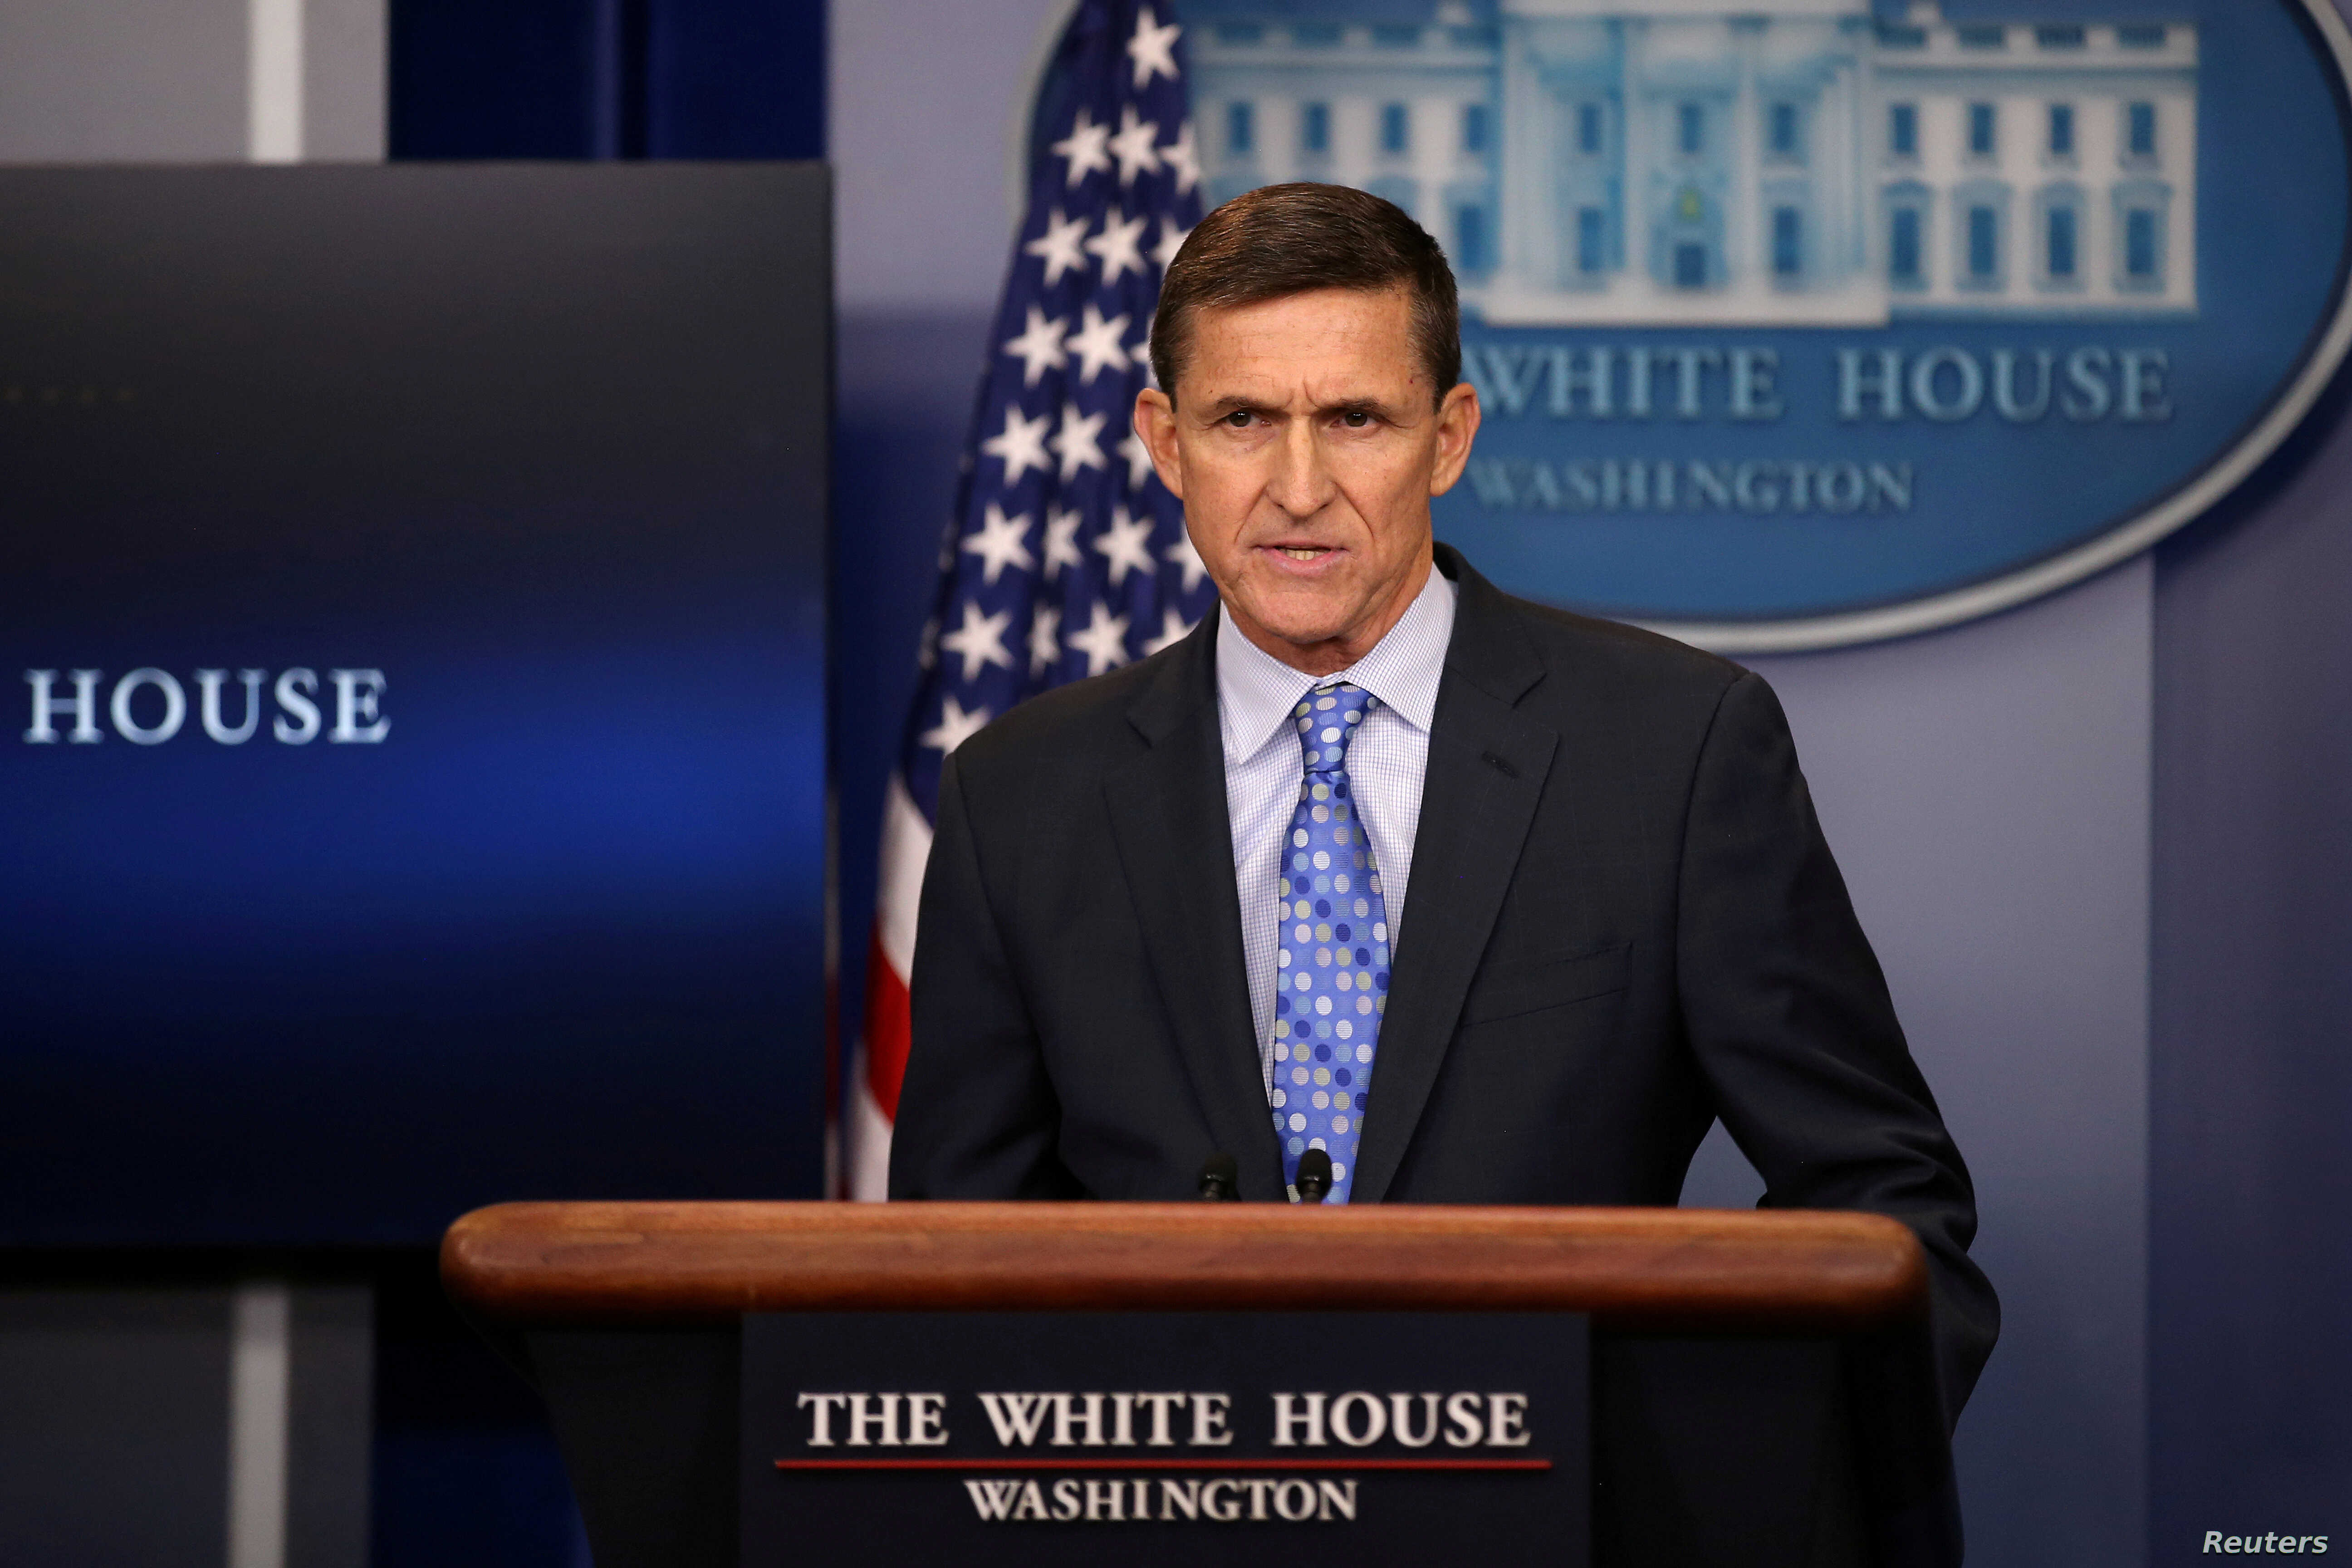 National security adviser General Michael Flynn delivers a statement daily briefing at the White House in Washington, Feb. 1, 2017.